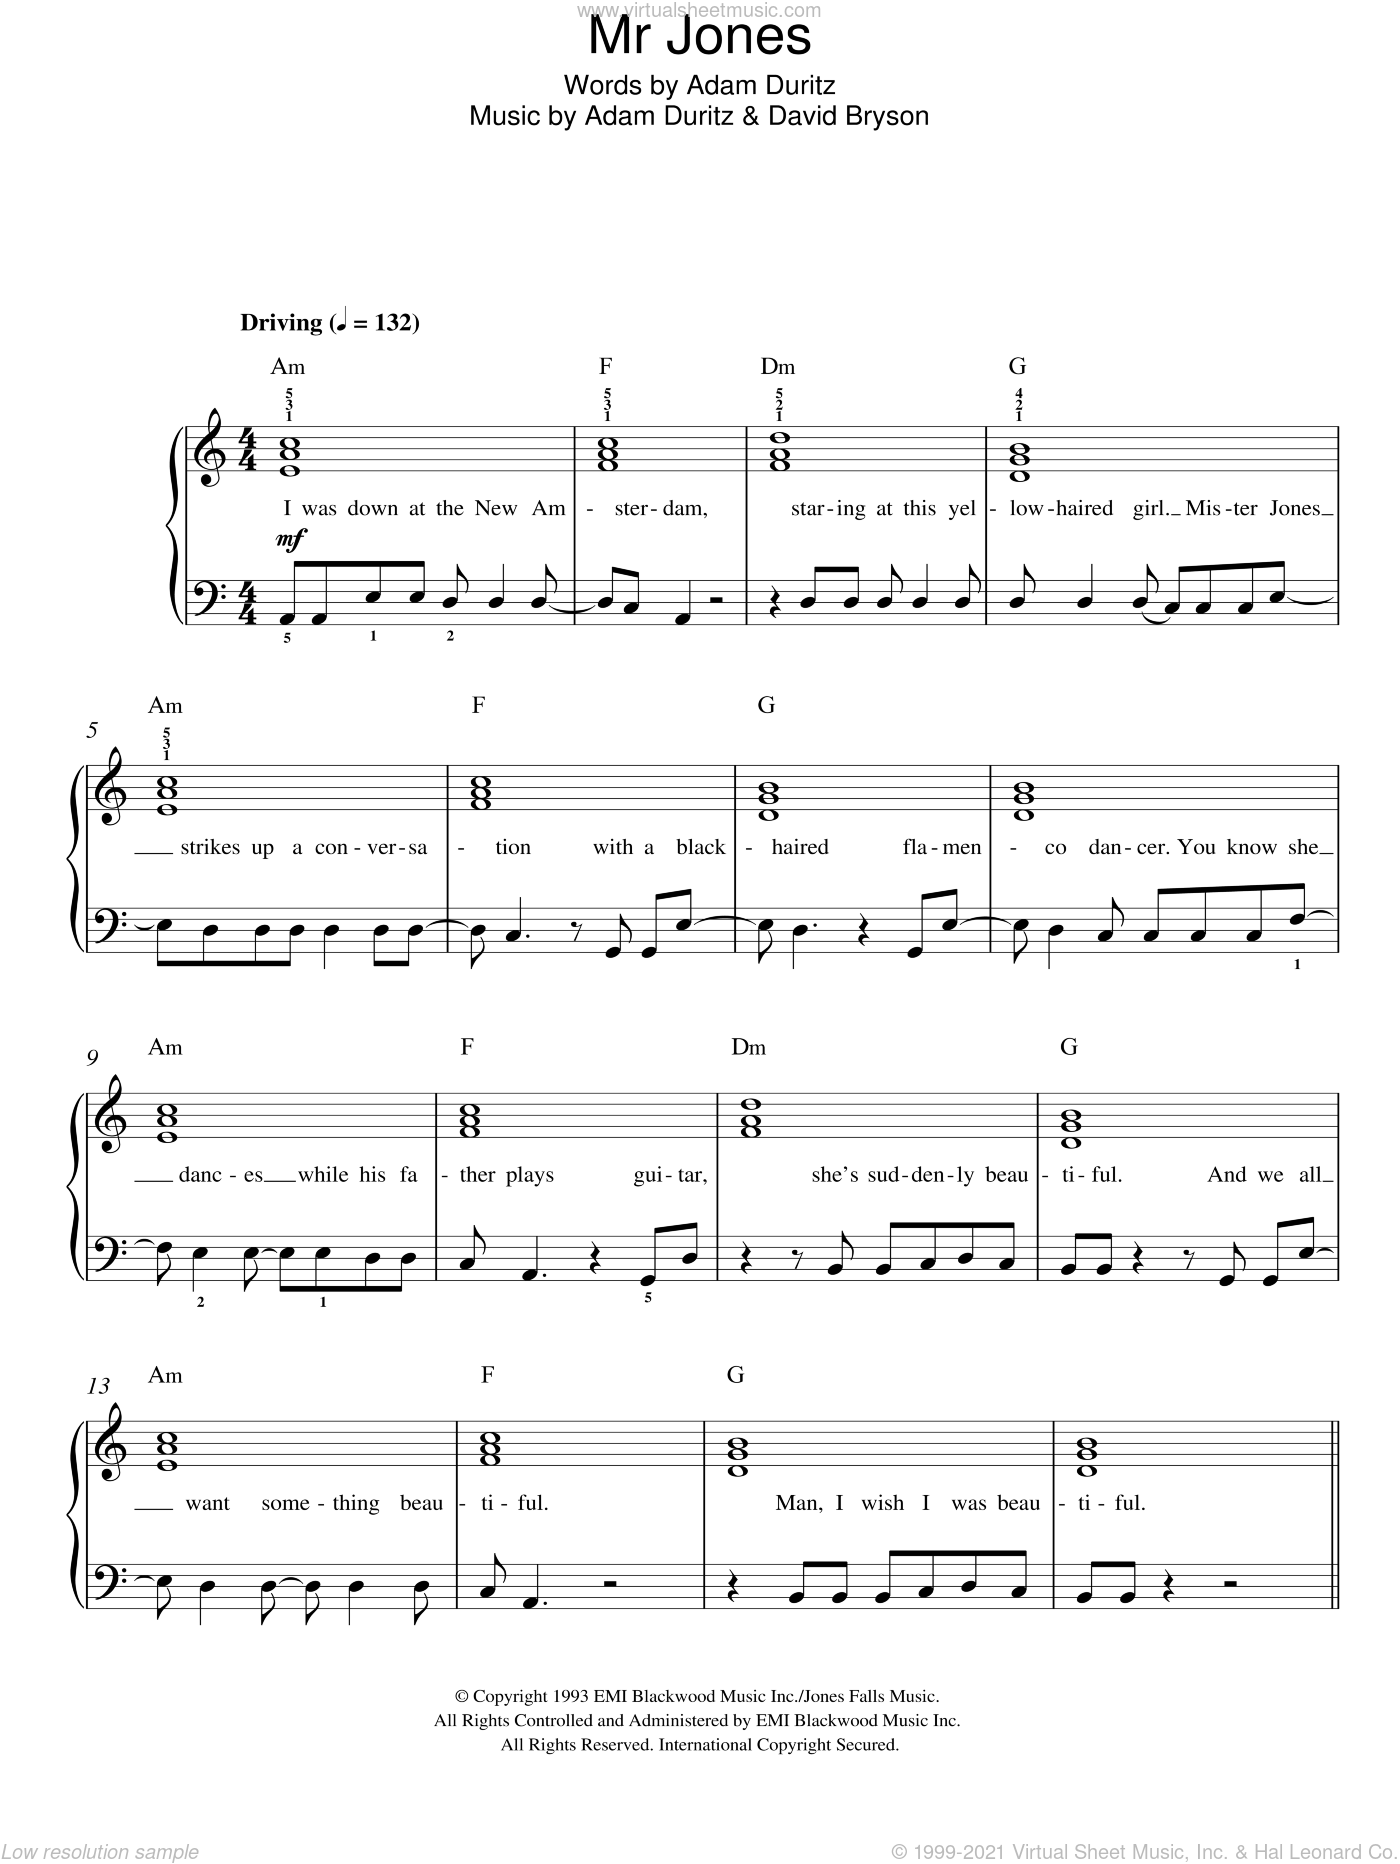 Mr. Jones sheet music for piano solo by Counting Crows, Adam Duritz and David Bryson, easy skill level